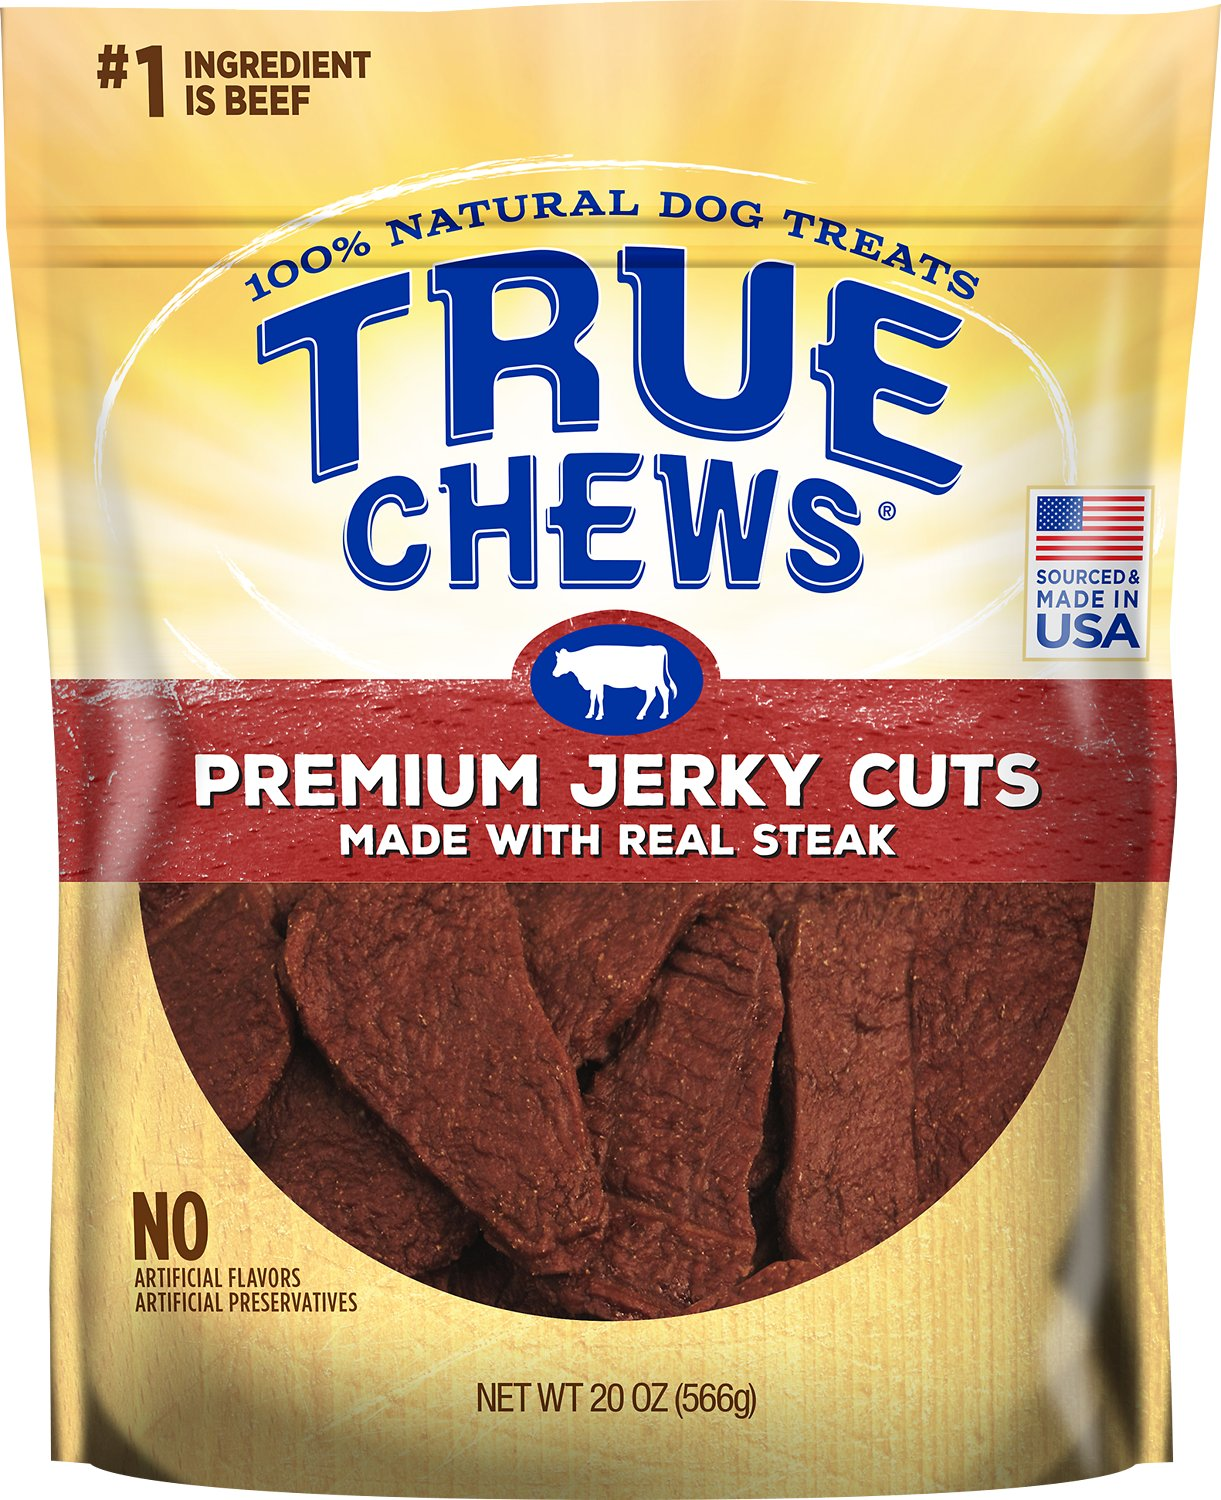 True Chews Premium Jerky Cuts with Real Sirloin Steak Dog Treats Image